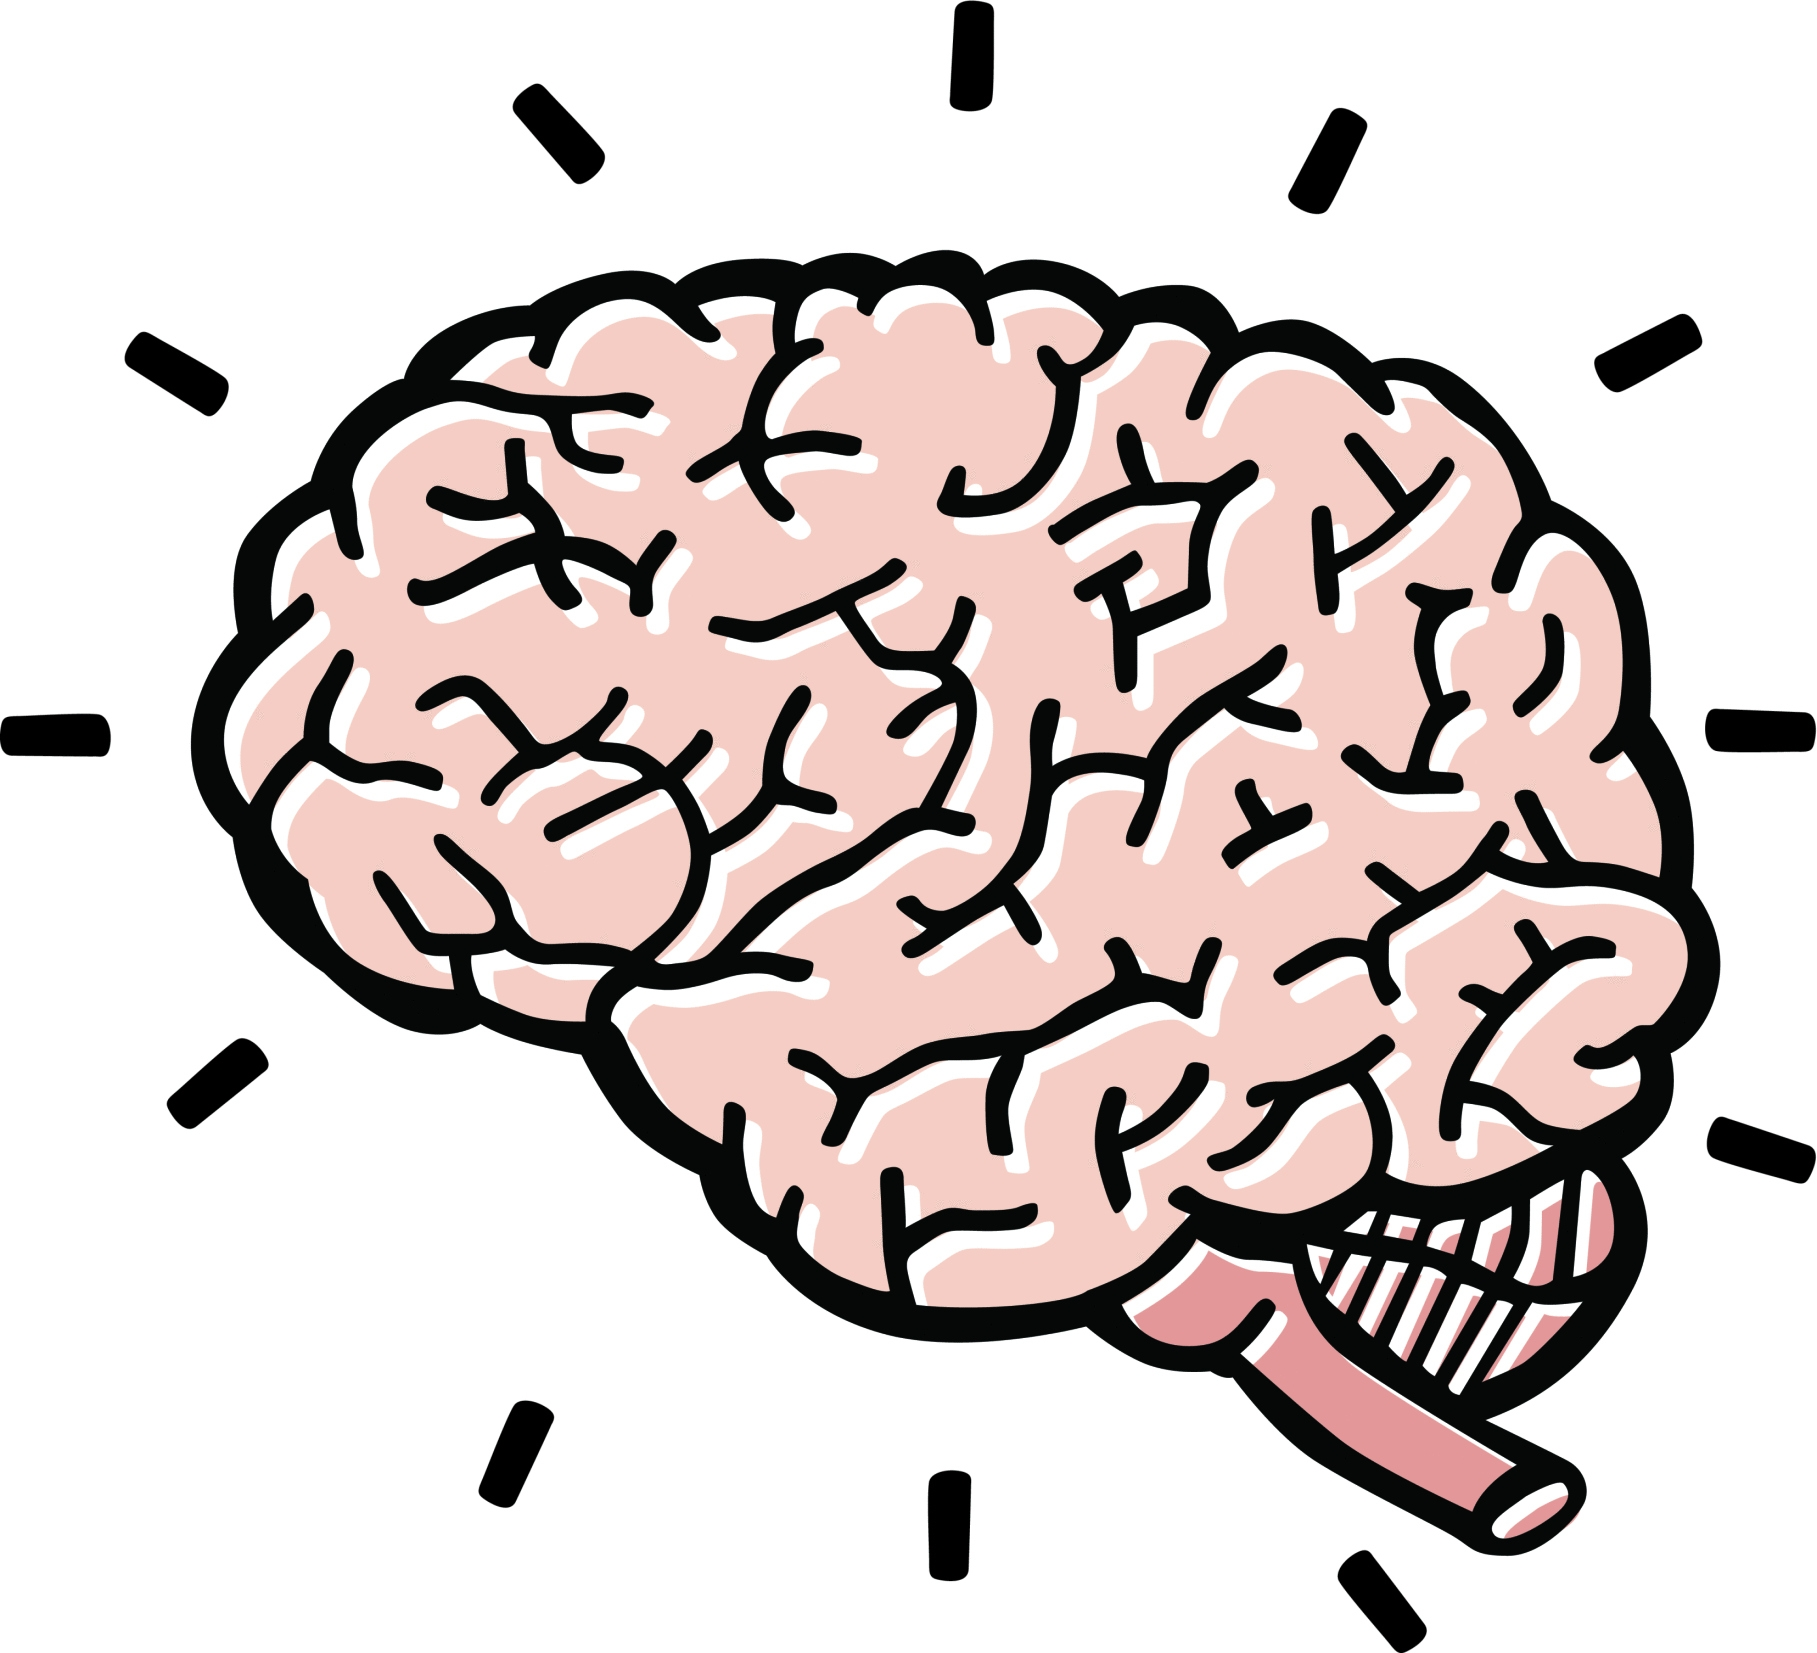 Free Cute Brain Cliparts, Download Free Clip Art, Free Clip.